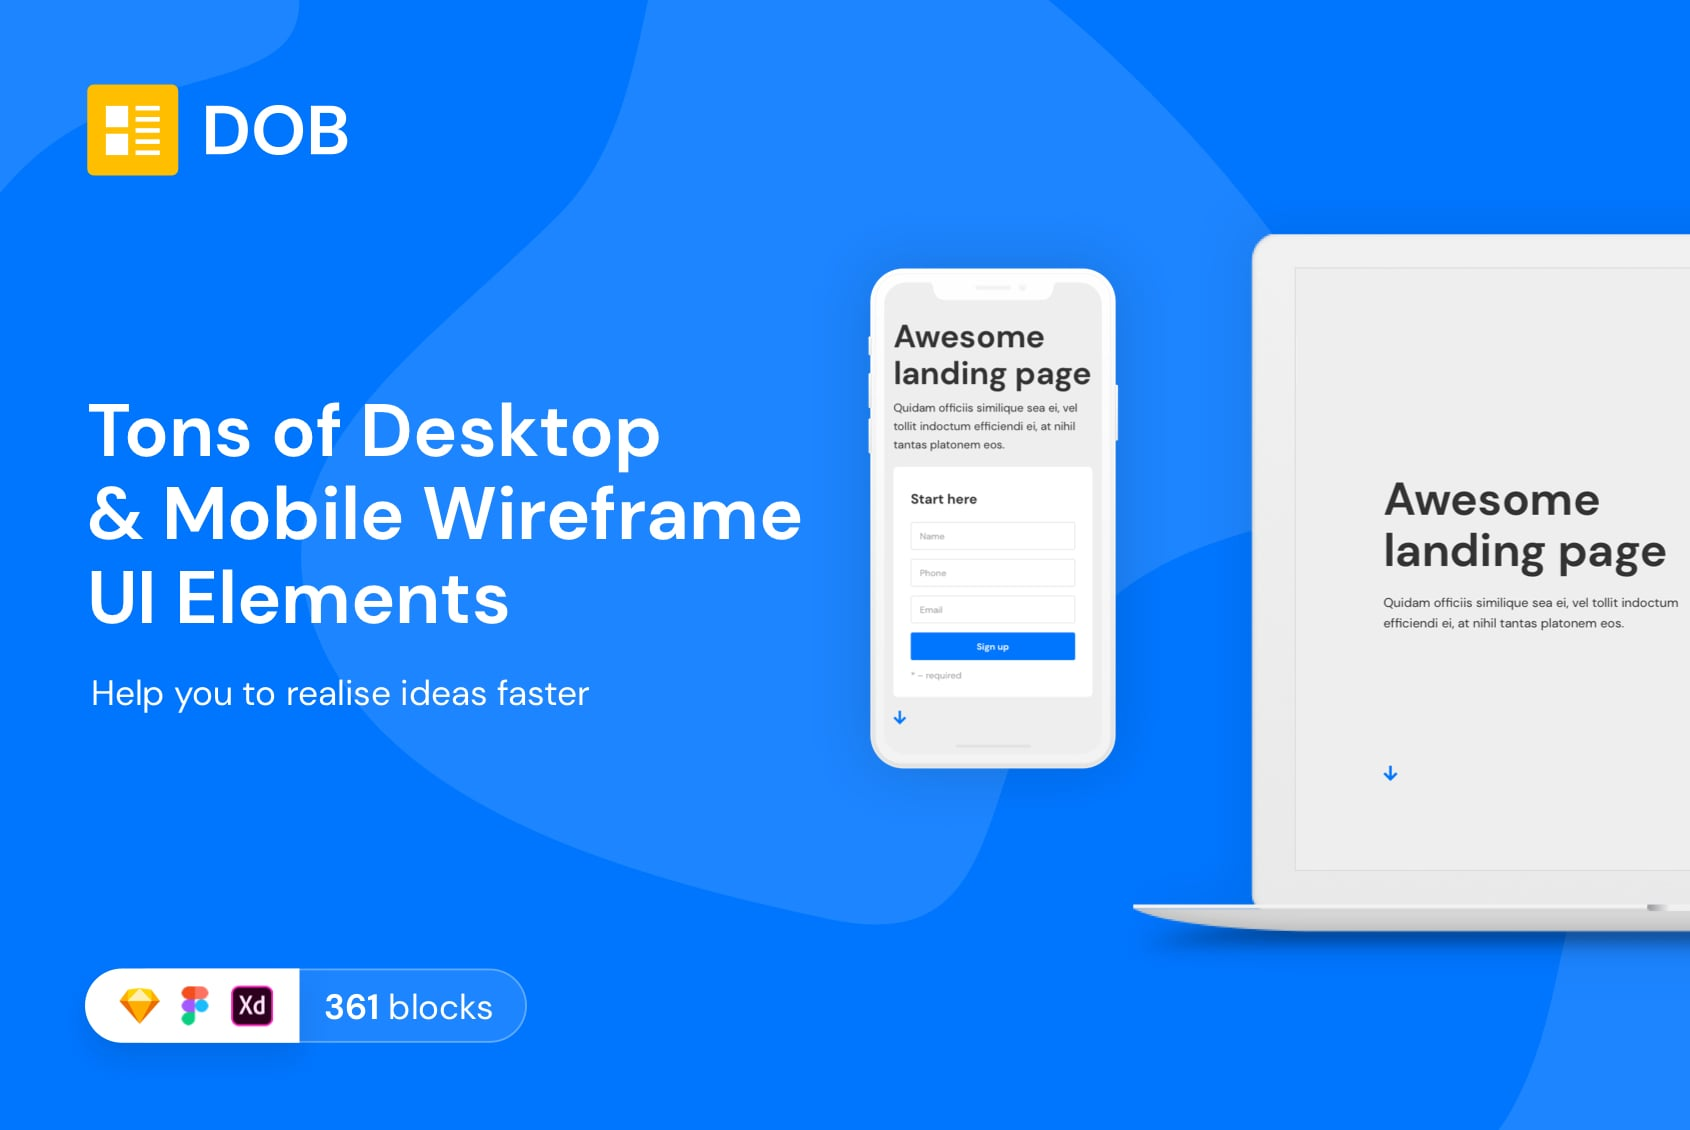 Desktop & Mobile Wireframe UI Elements